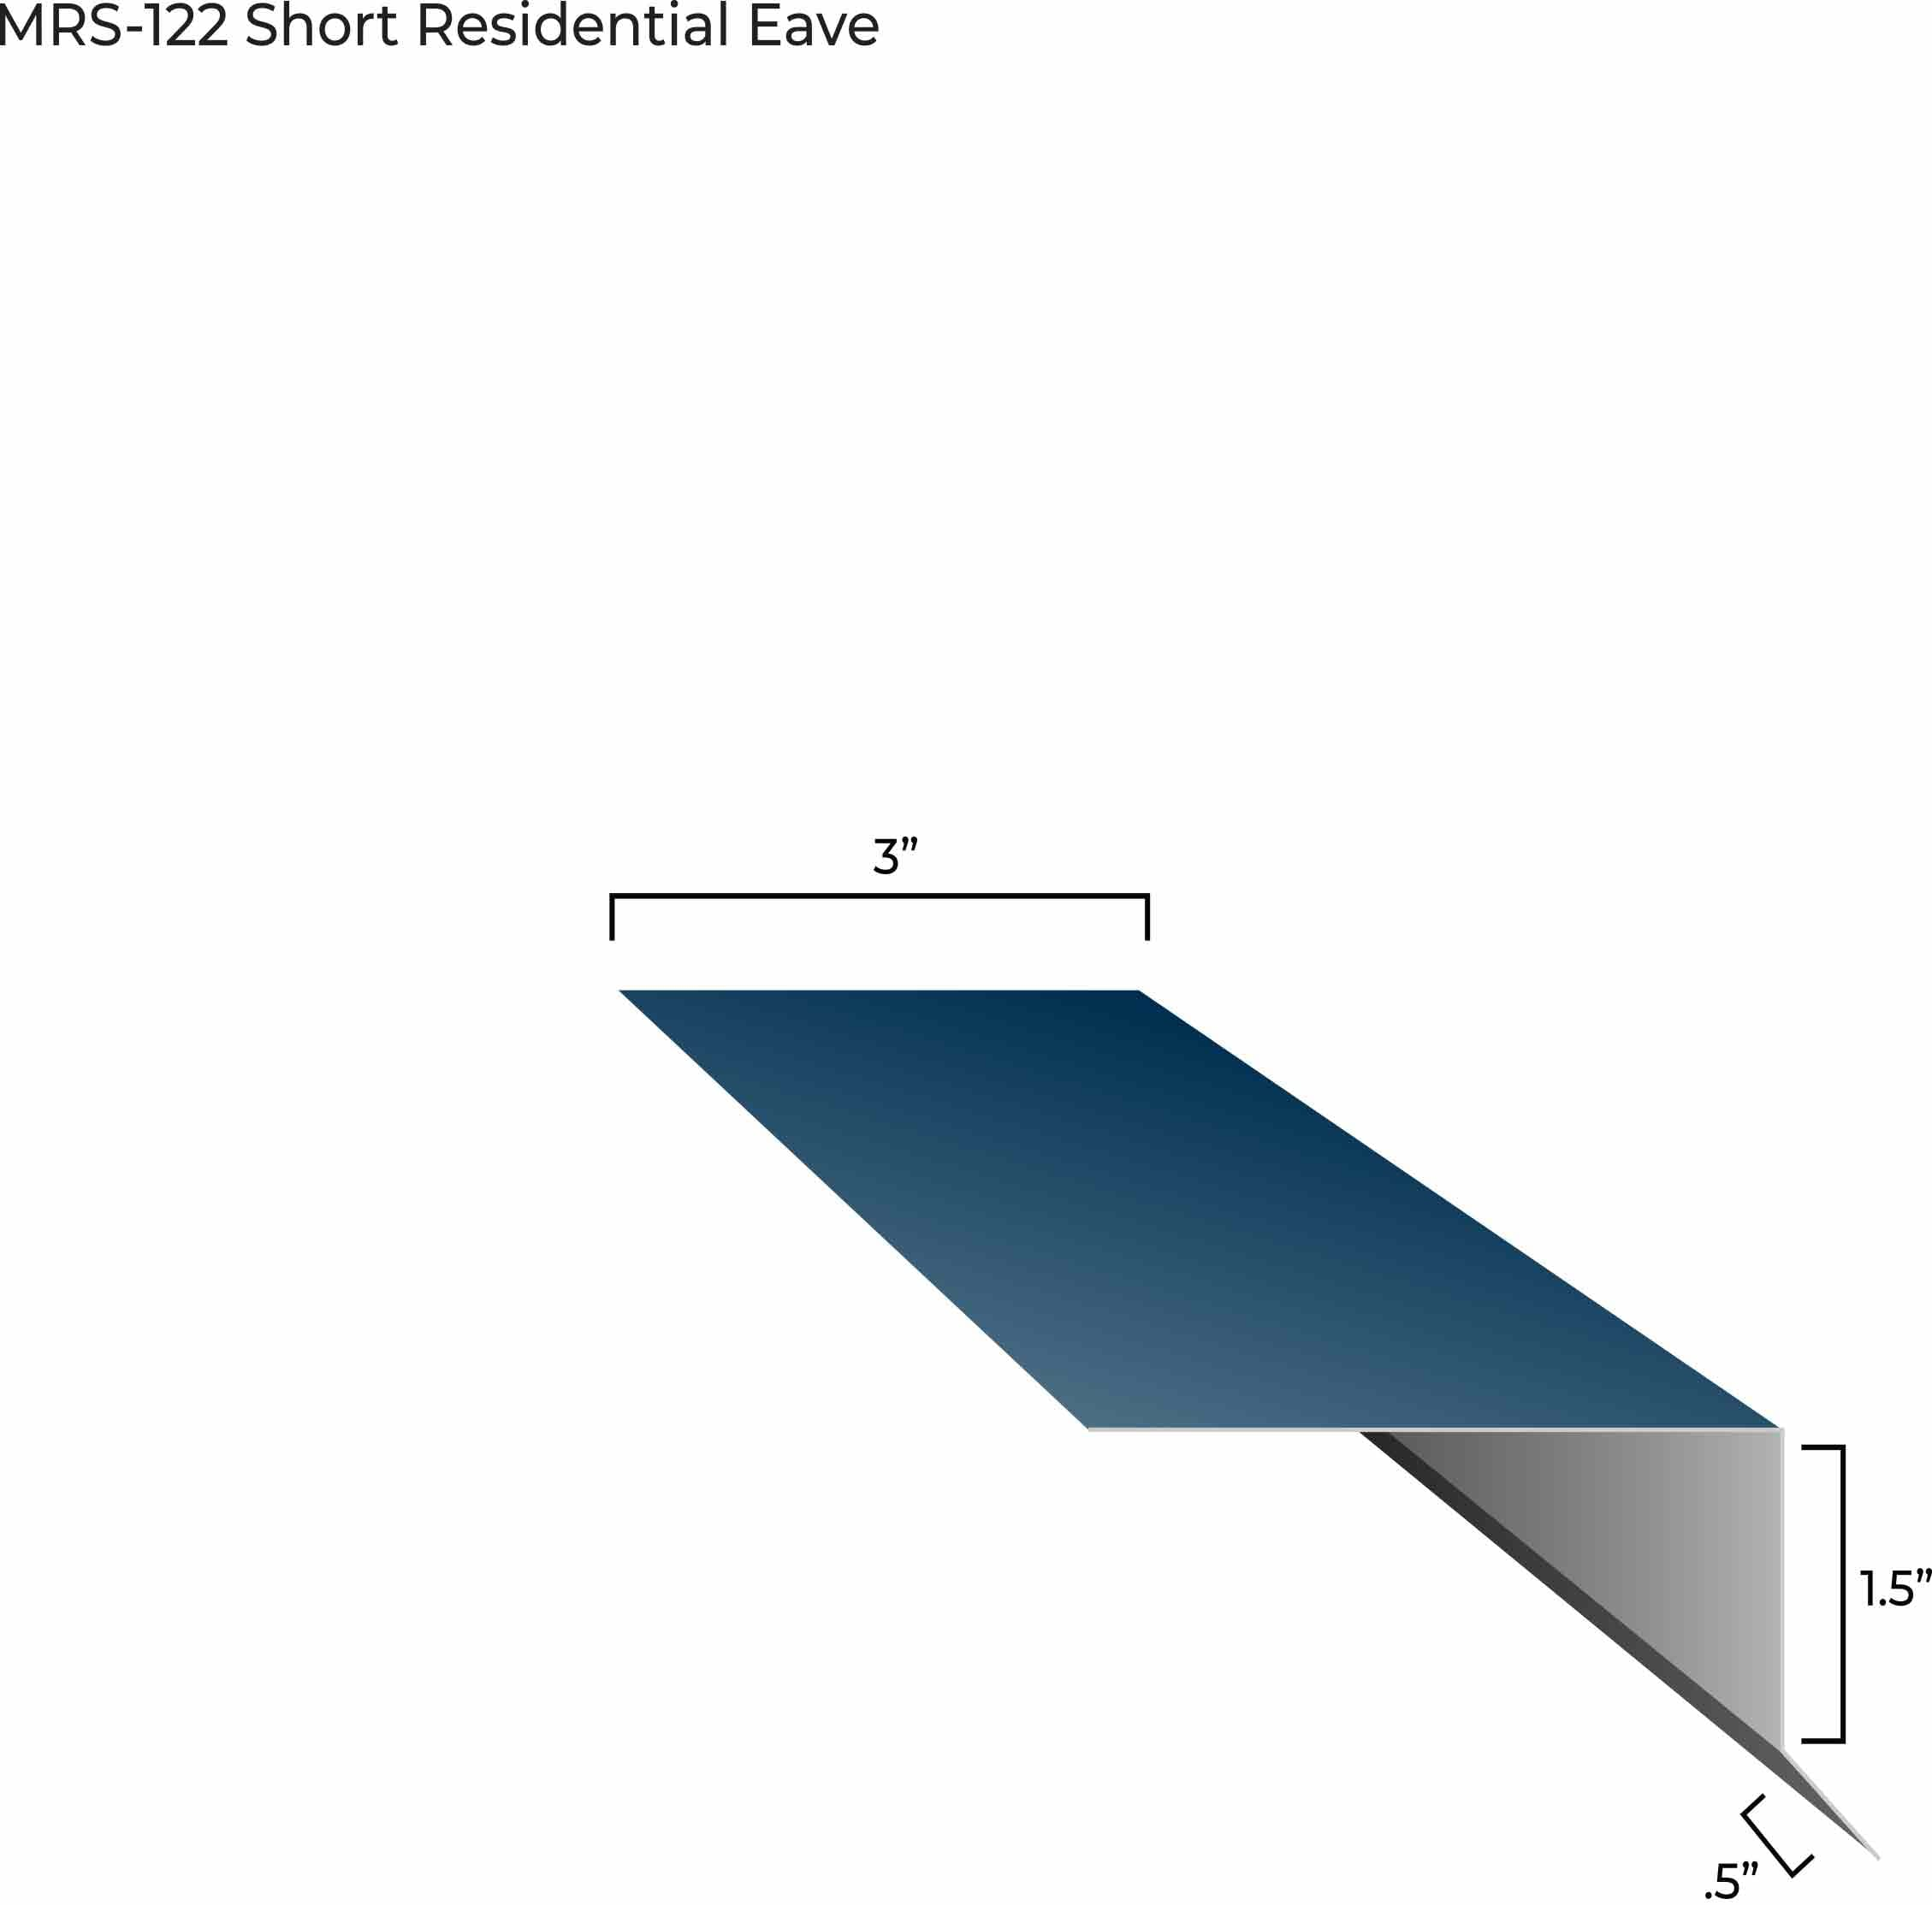 MRS-122 Short Residential Eave